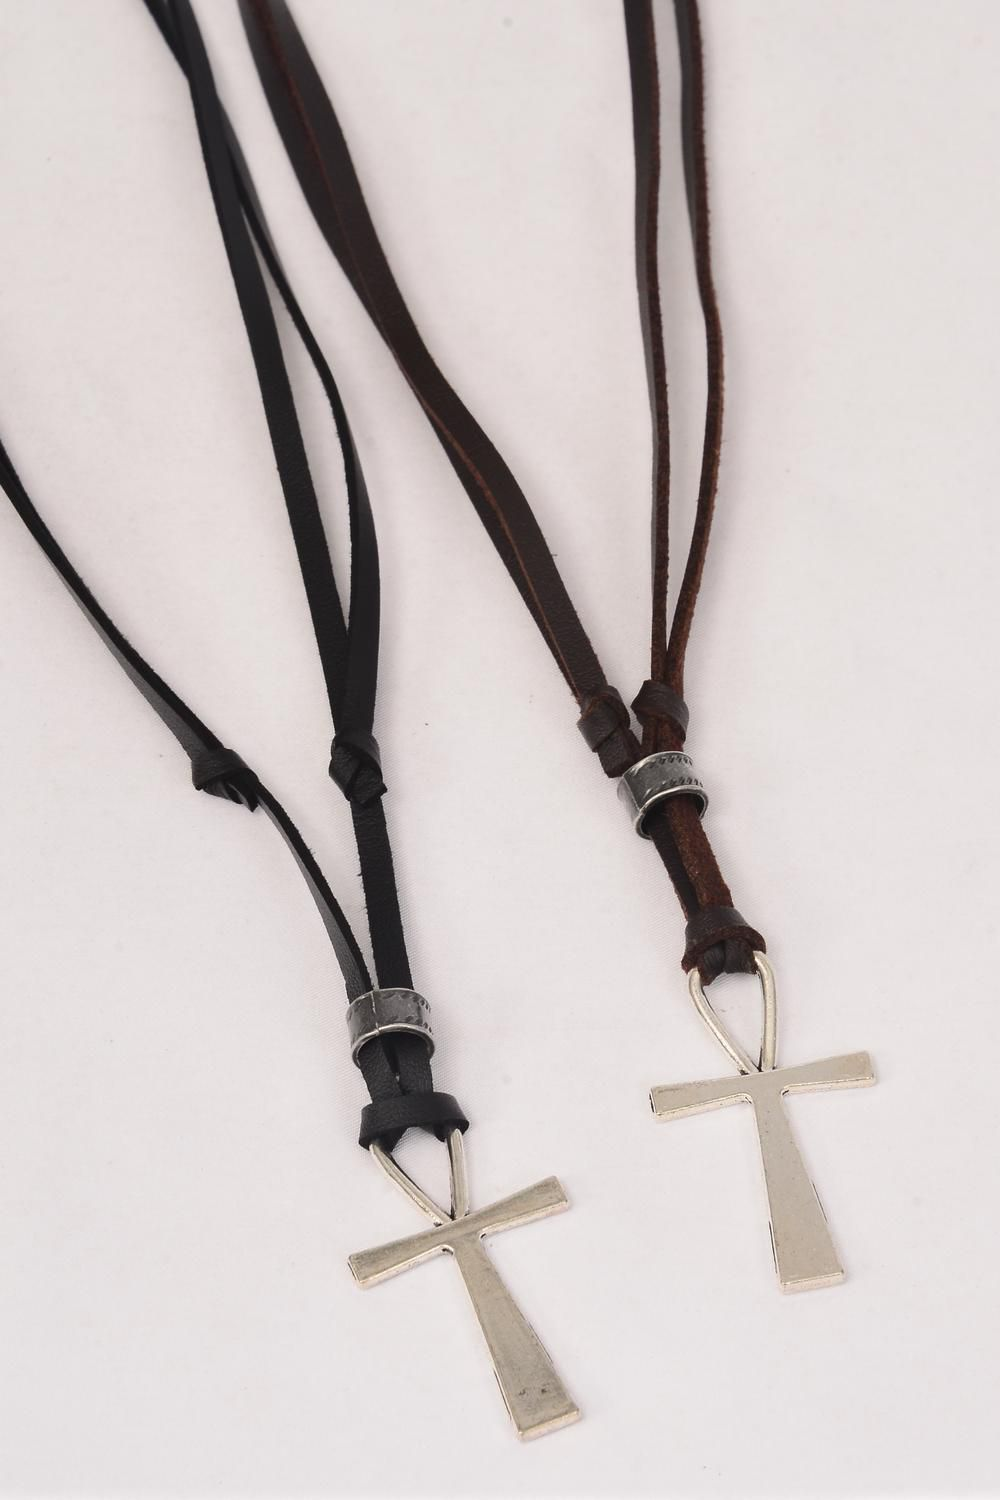 Men's Leather Necklace Ankh/DZ **Adjustable** 6 Black & 6 Brown Leather Mix,Hang Tag & OPP Bag & UPC Code -